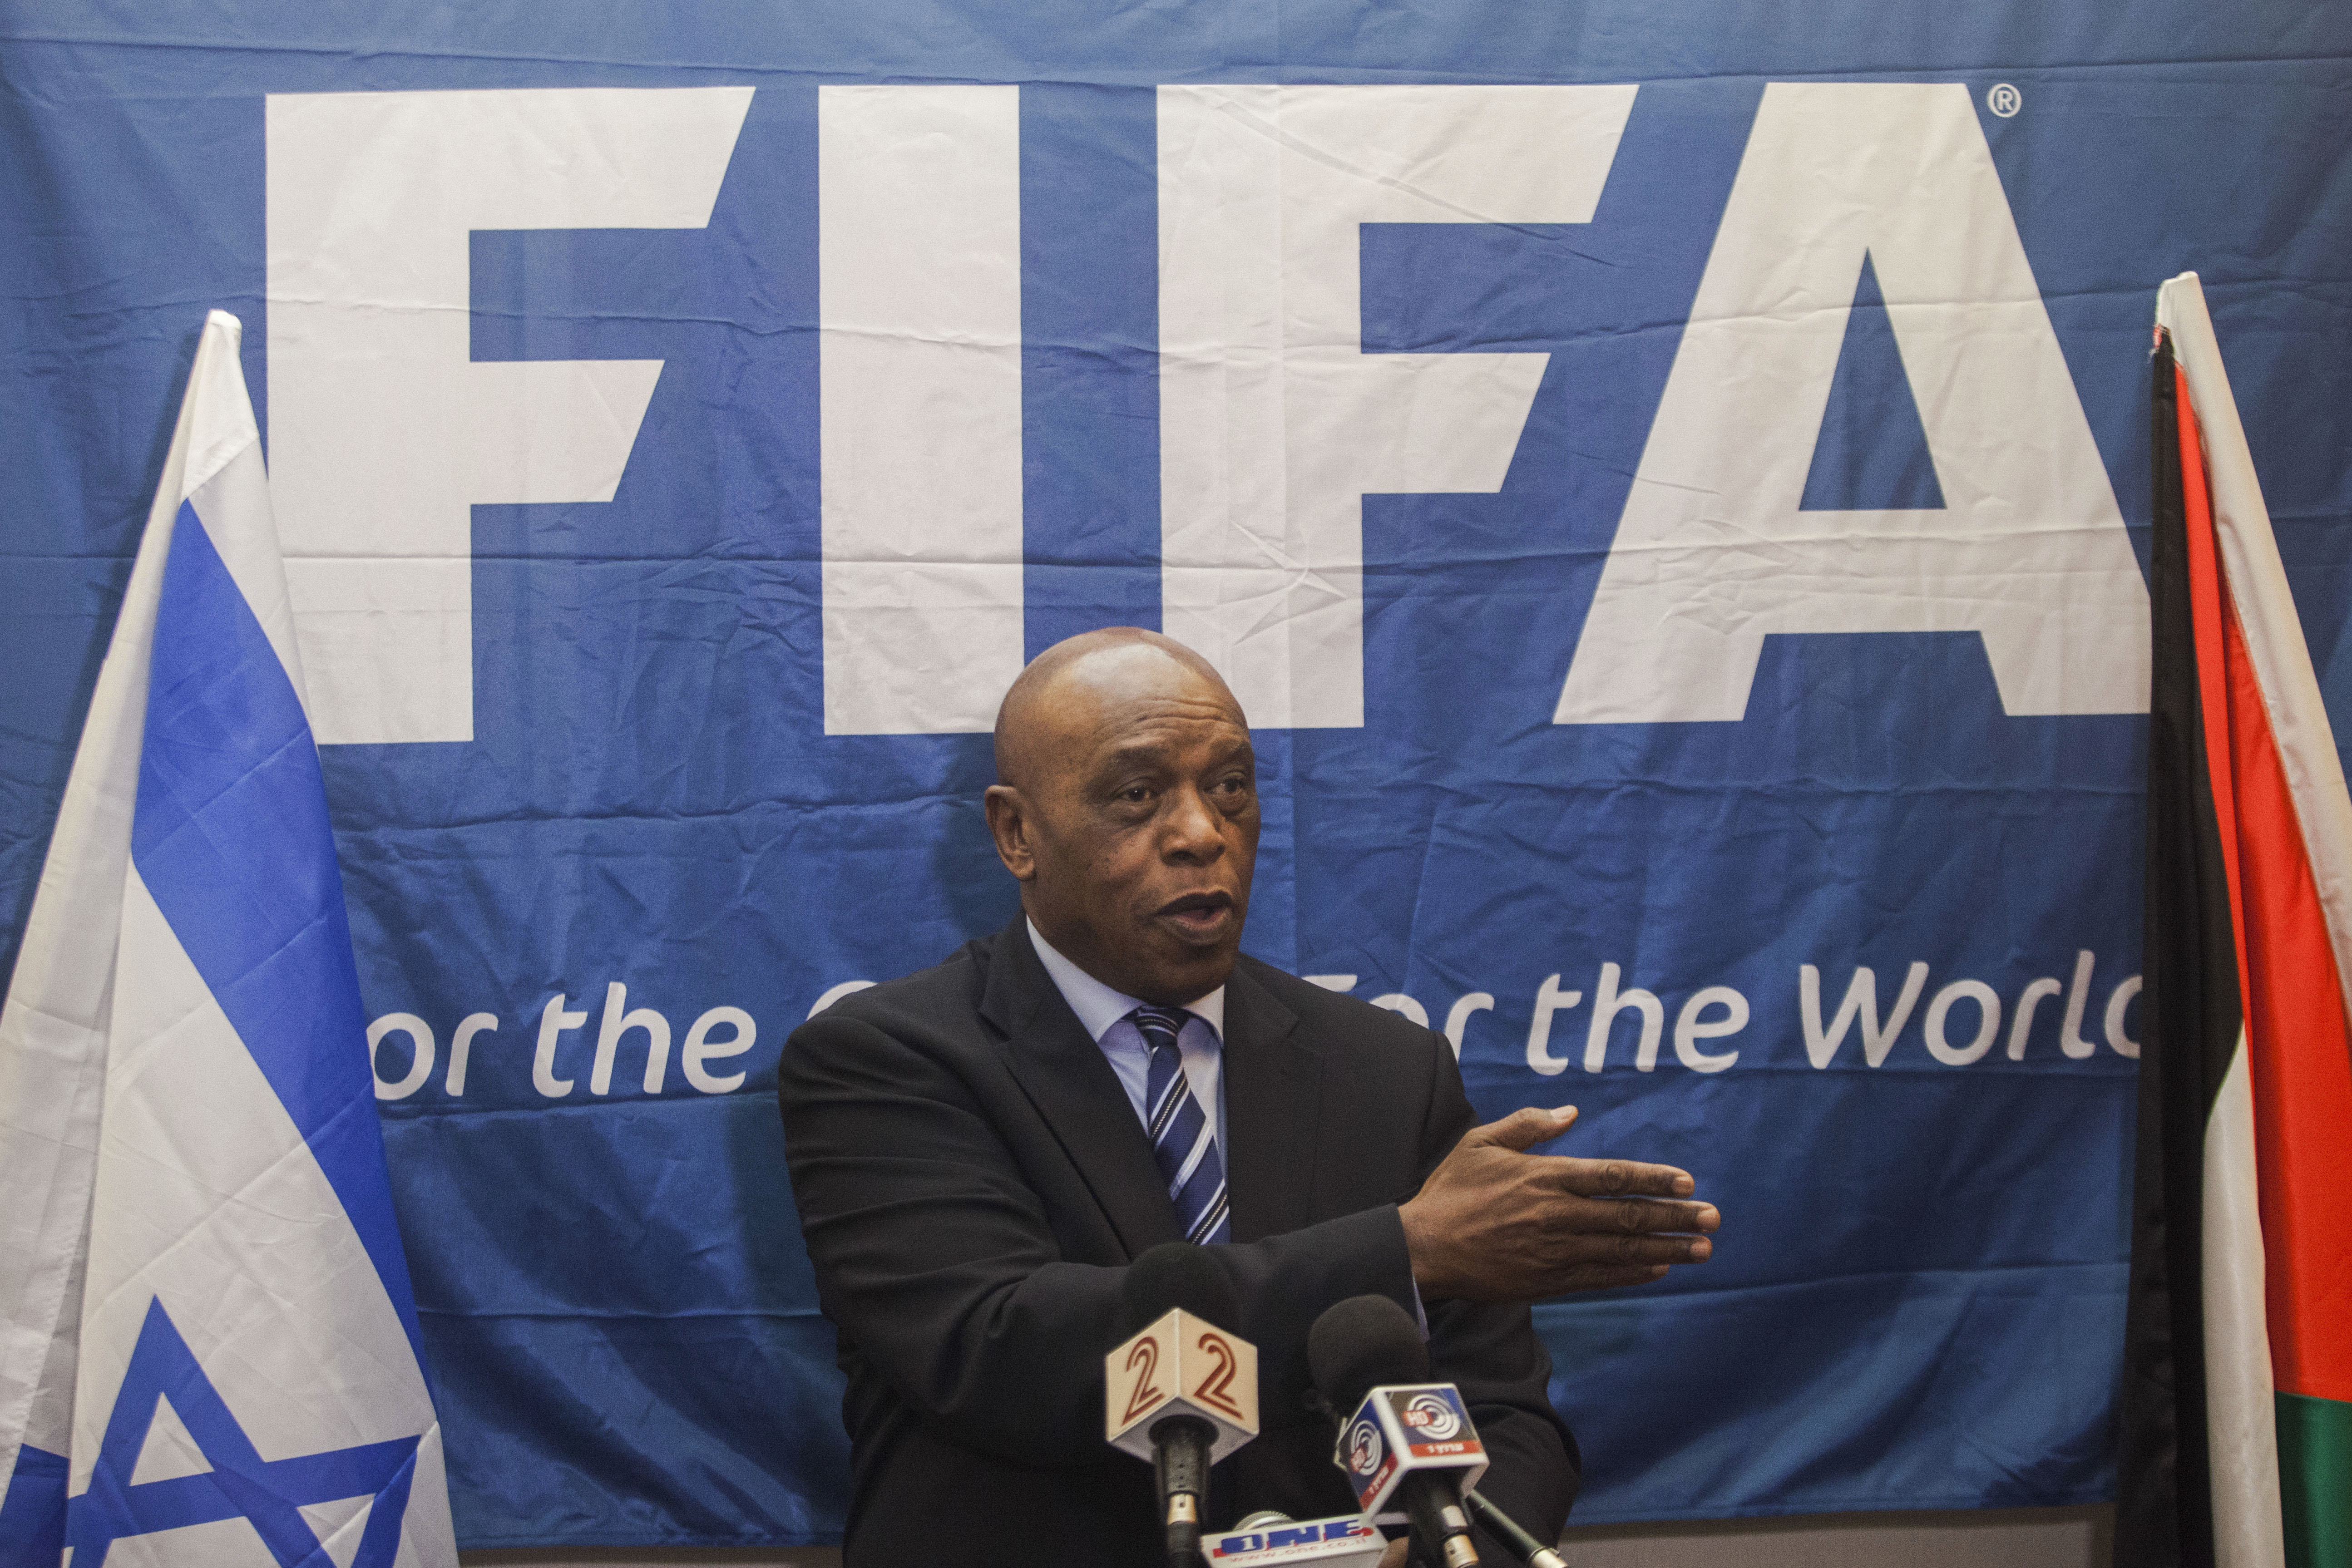 Chairman of the FIFA Monitoring Committee Israel-Palestine, Tokyo Sexwale  speaks to the media during a press conference in Tel Aviv, Israel, Friday, Oct. 2, 2015. Sexwale, who was an anti-apartheid campaigner and former political prisoner on Robben Island, is still deliberating over whether to stand in the FIFA presidential election. u0093There is a still a deadline ... but we still have some days and I am sure that in the right time I will make an announcement,u0094 Sexwale said in the conference Friday where he headed a meeting on Israeli-Palestinian football relations.  (AP Photo/Dan Balilty)